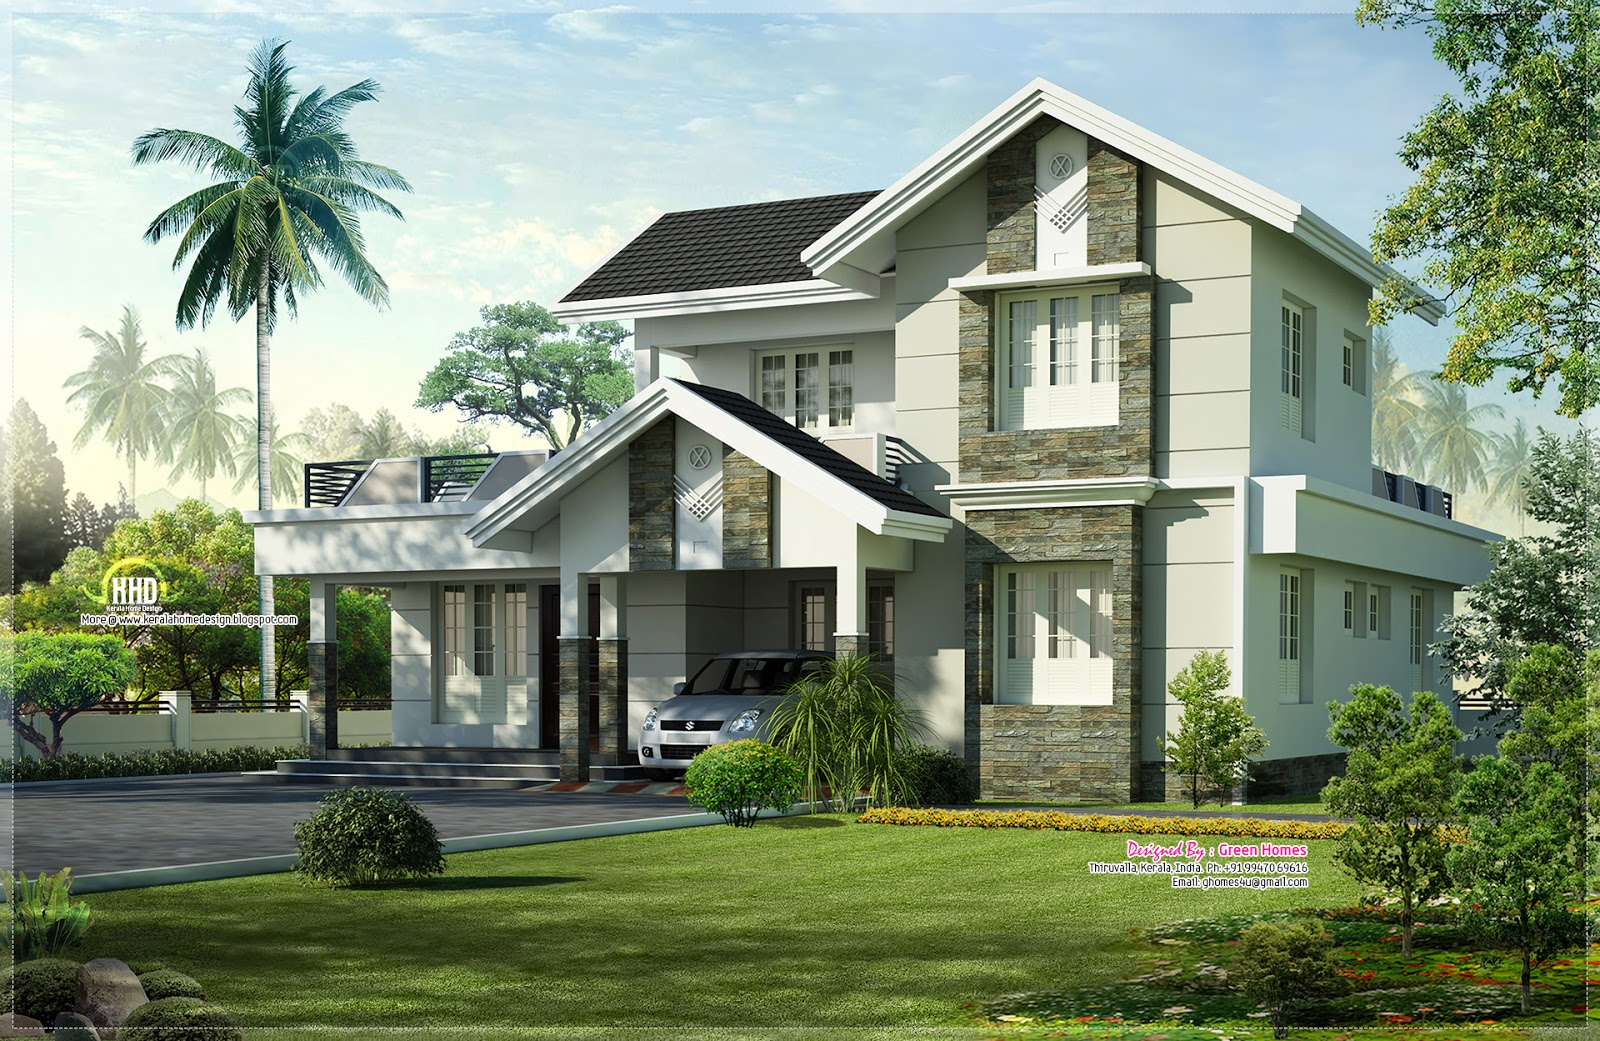 1975 nice home exterior design home kerala plans Outside house